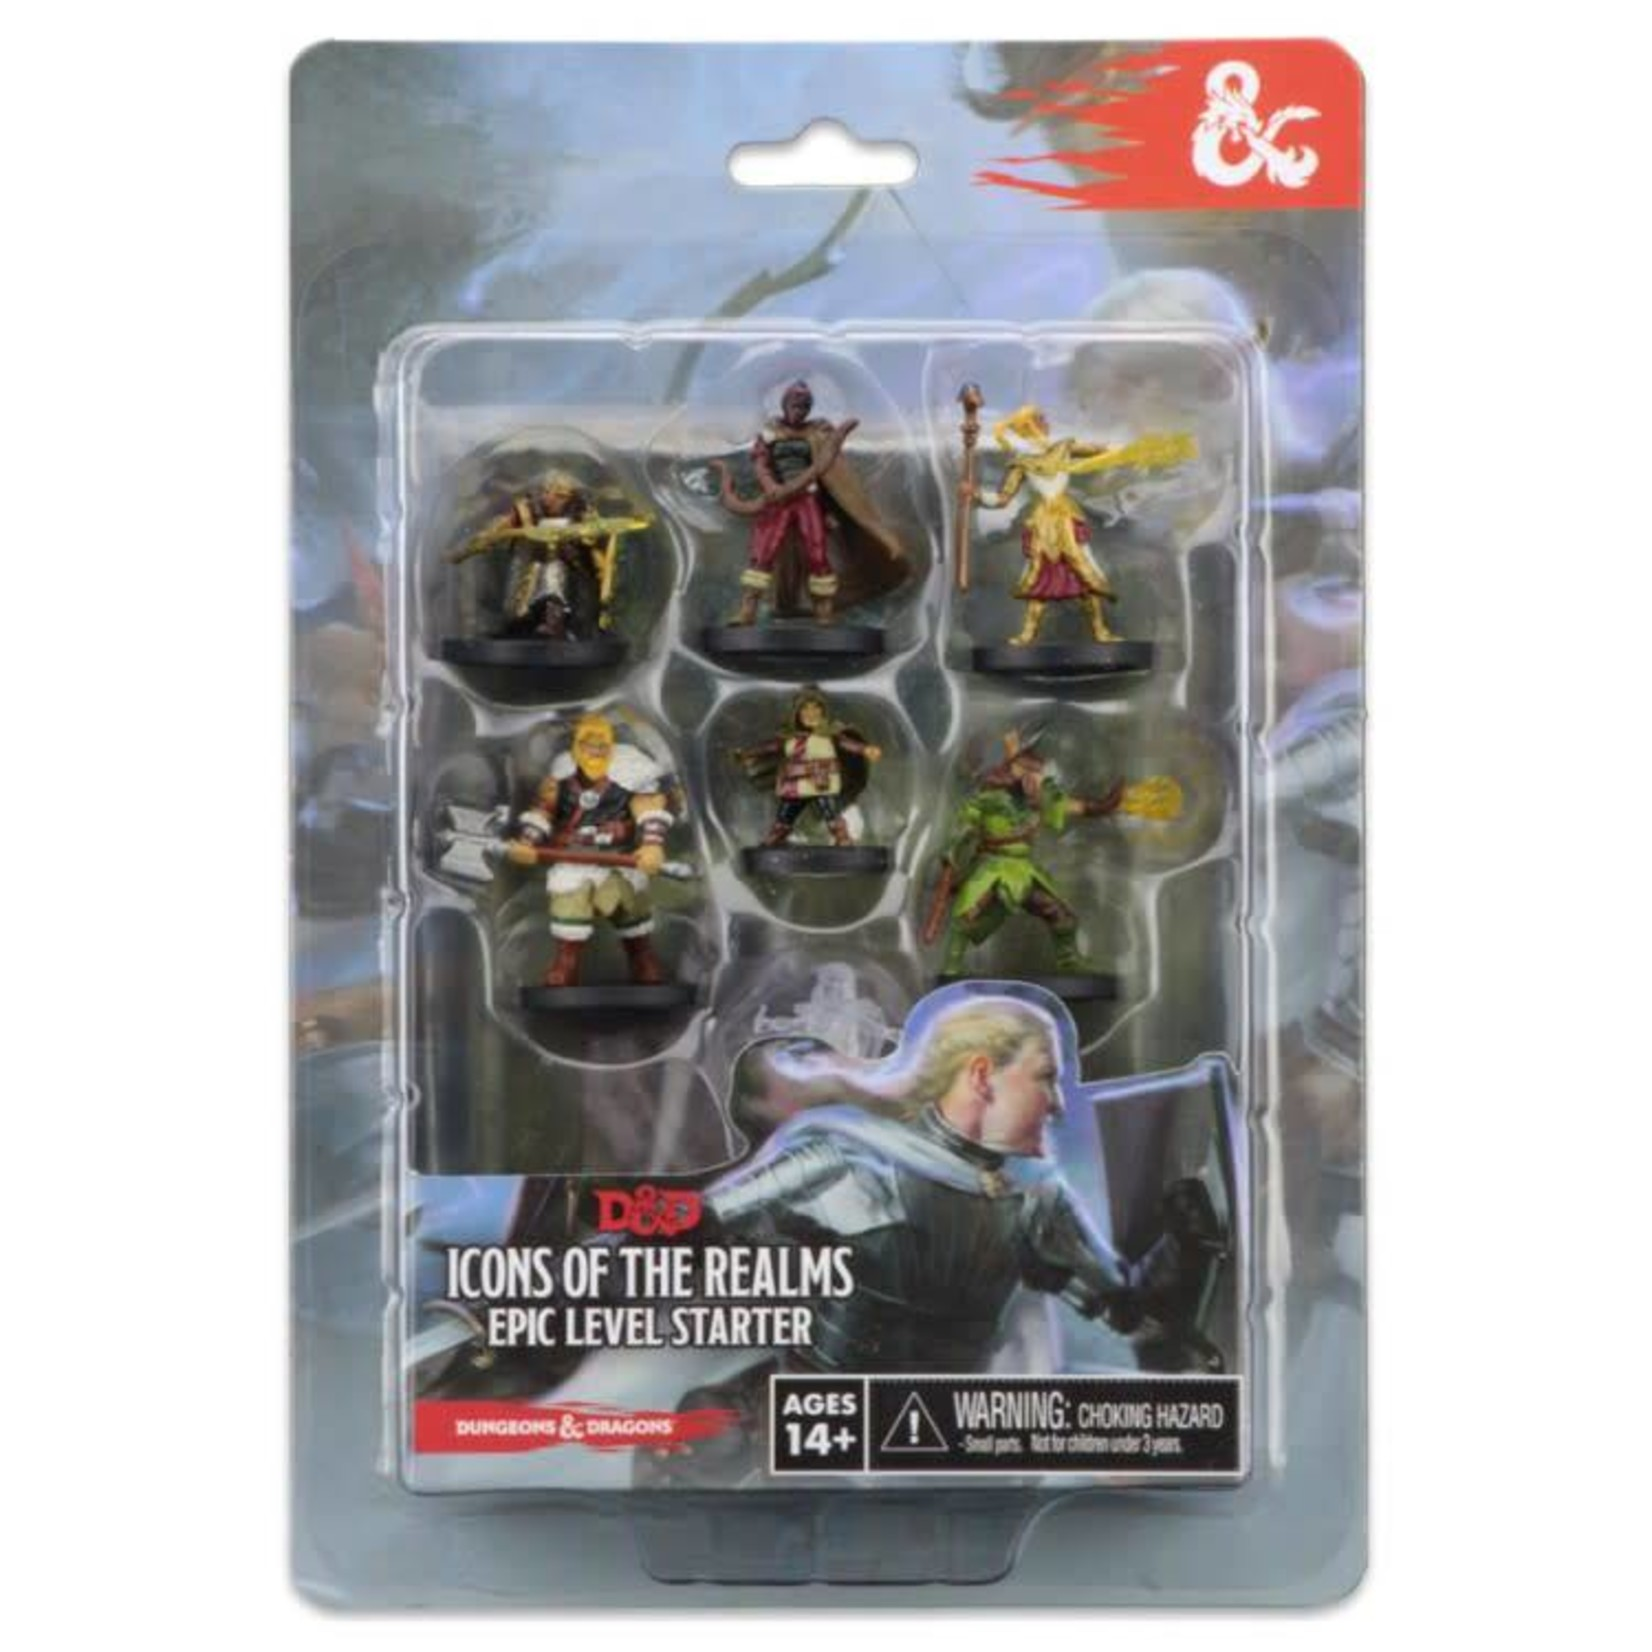 WizKids Dungeons and Dragons Icons of the Realms Epic Level Starter Miniatures